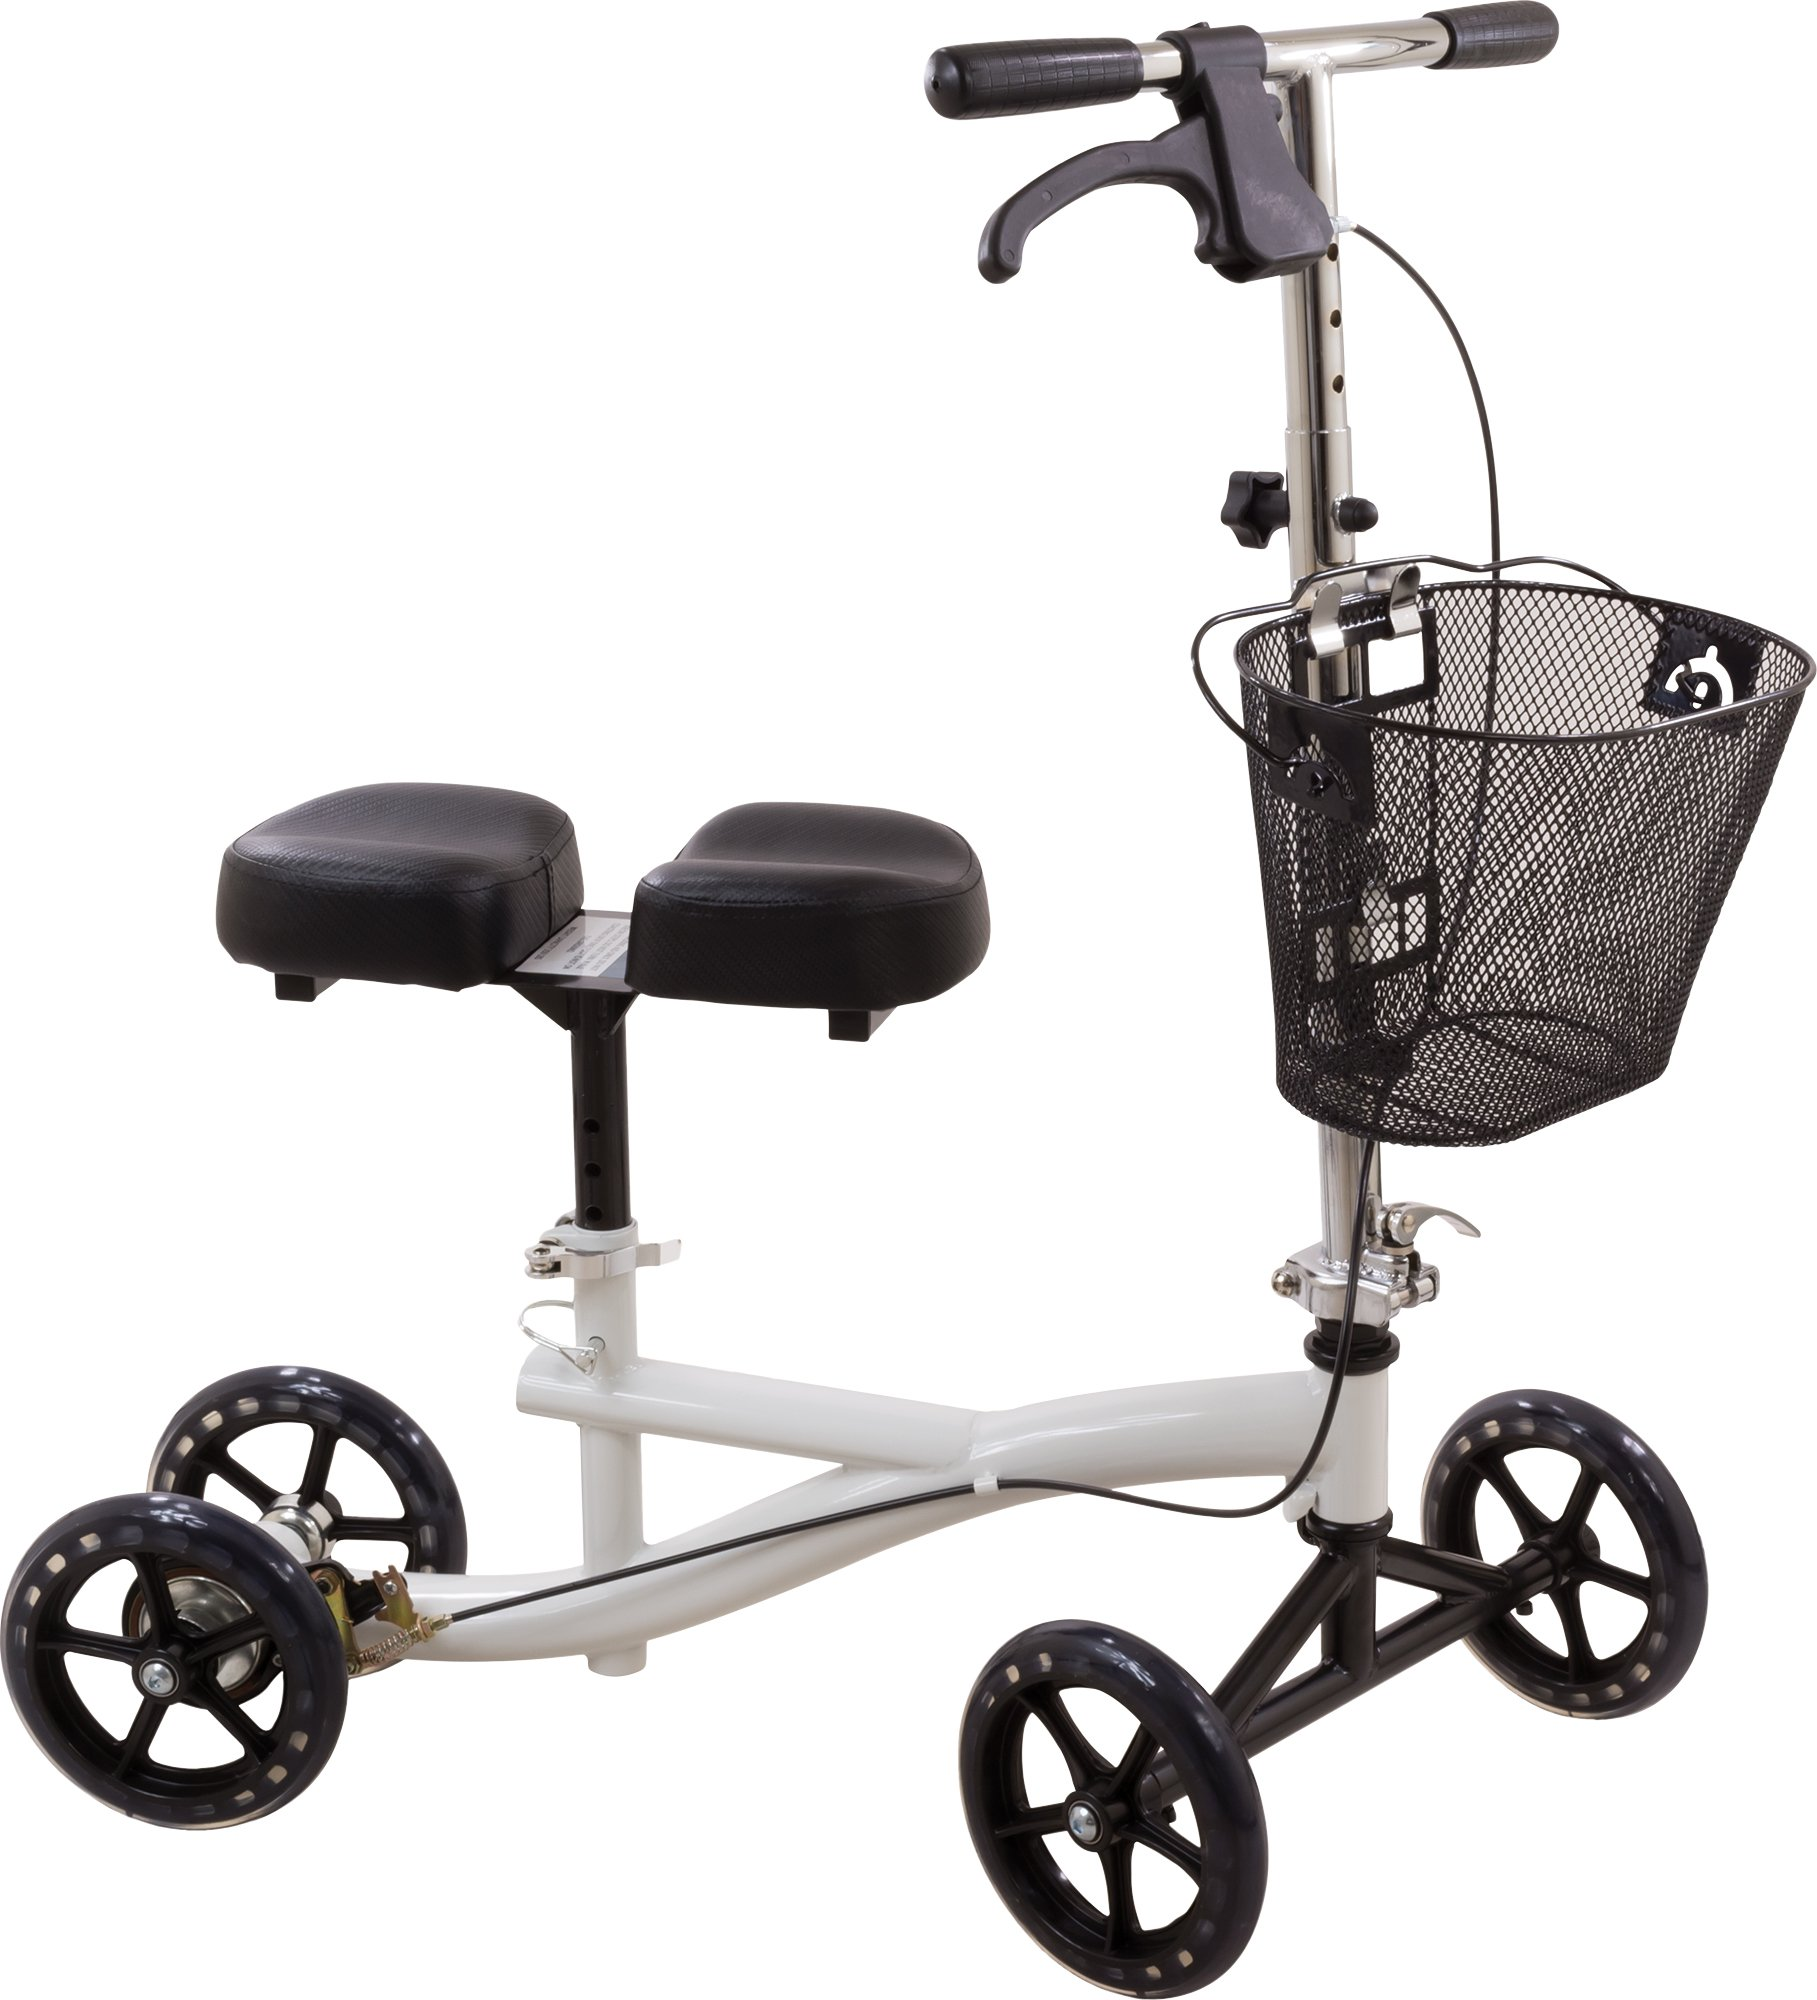 Roscoe Knee Scooter with Basket - Knee Walker for Ankle or Foot Injuries - Height Adjustable Knee Crutch Medical Scooter, White by Roscoe Medical